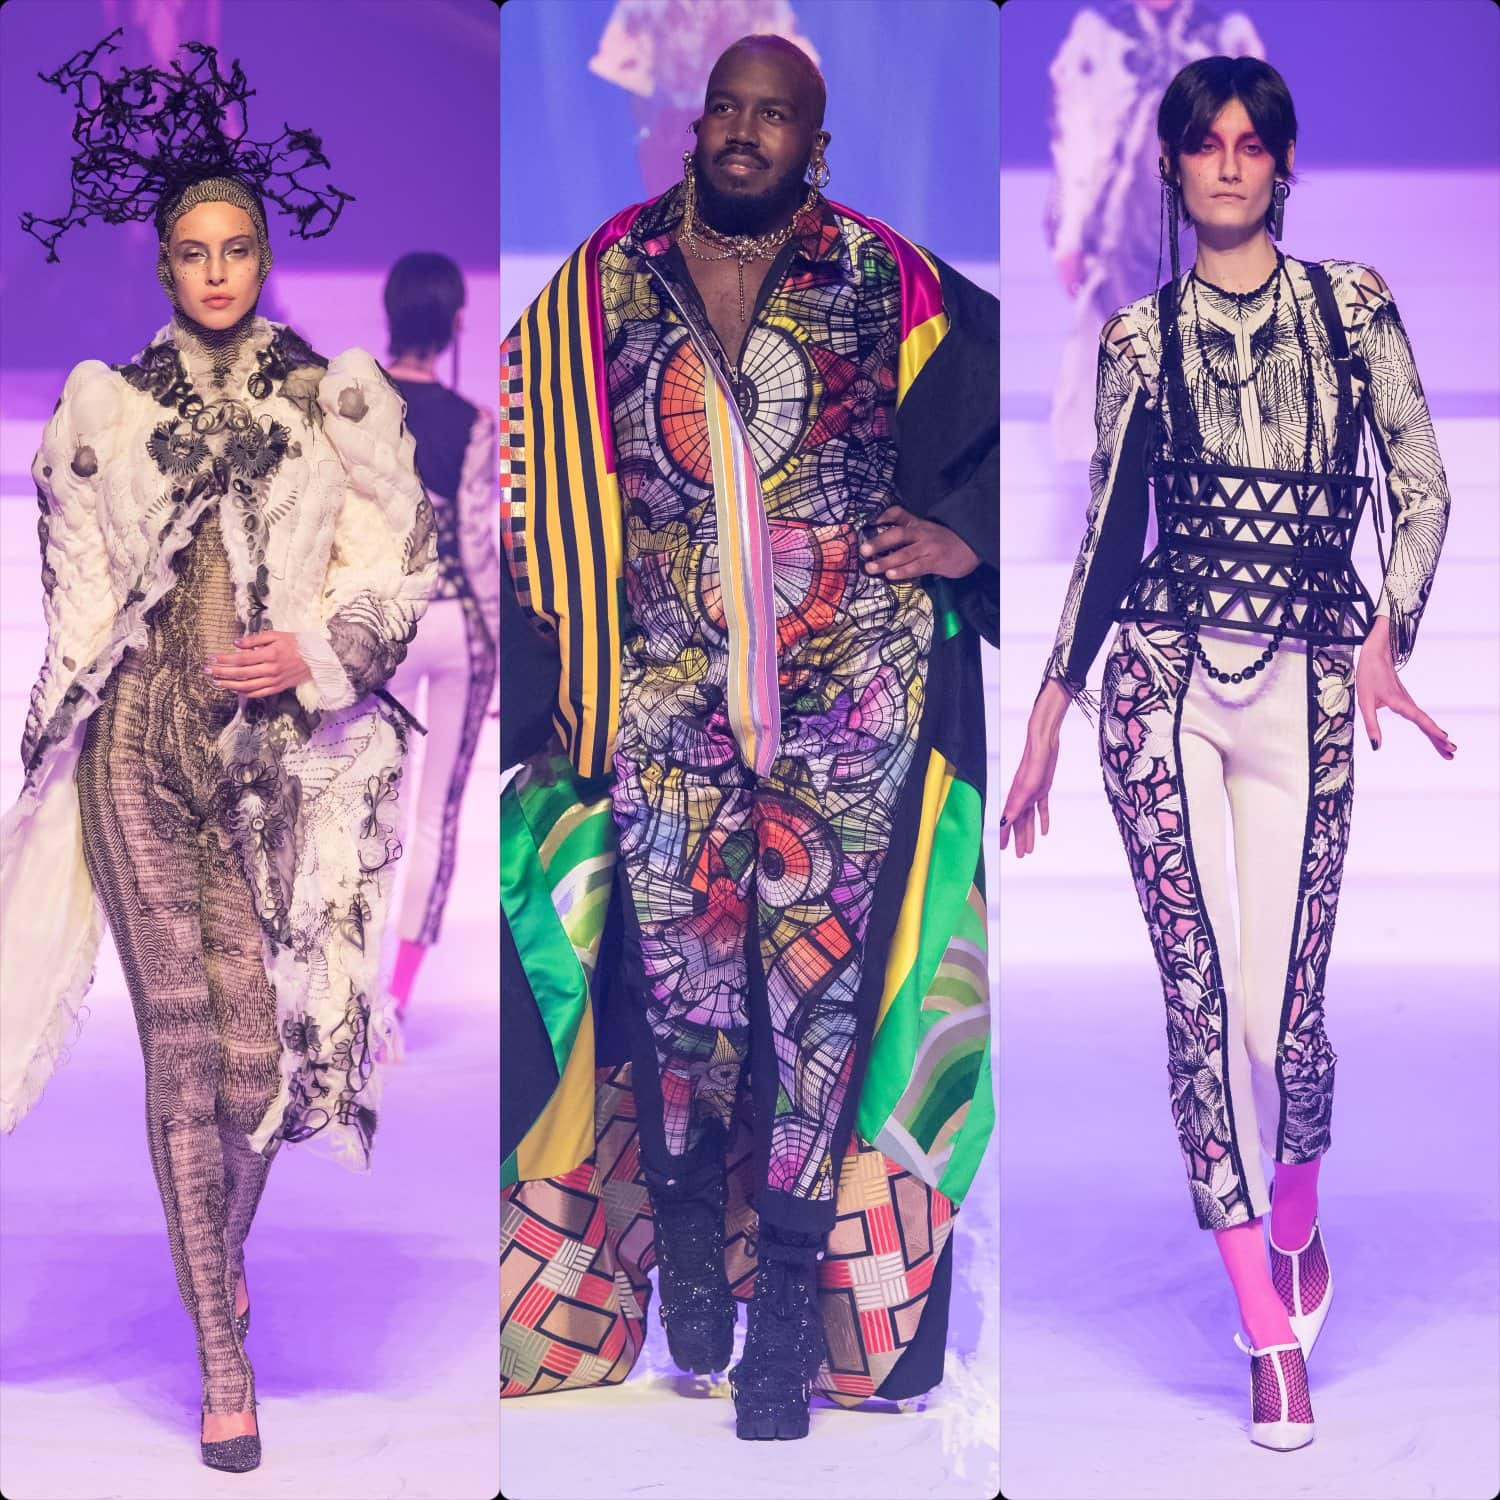 Jean Paul Gaultier Haute Couture Spring Summer 2020 Last Show by RUNWAY MAGAZINE